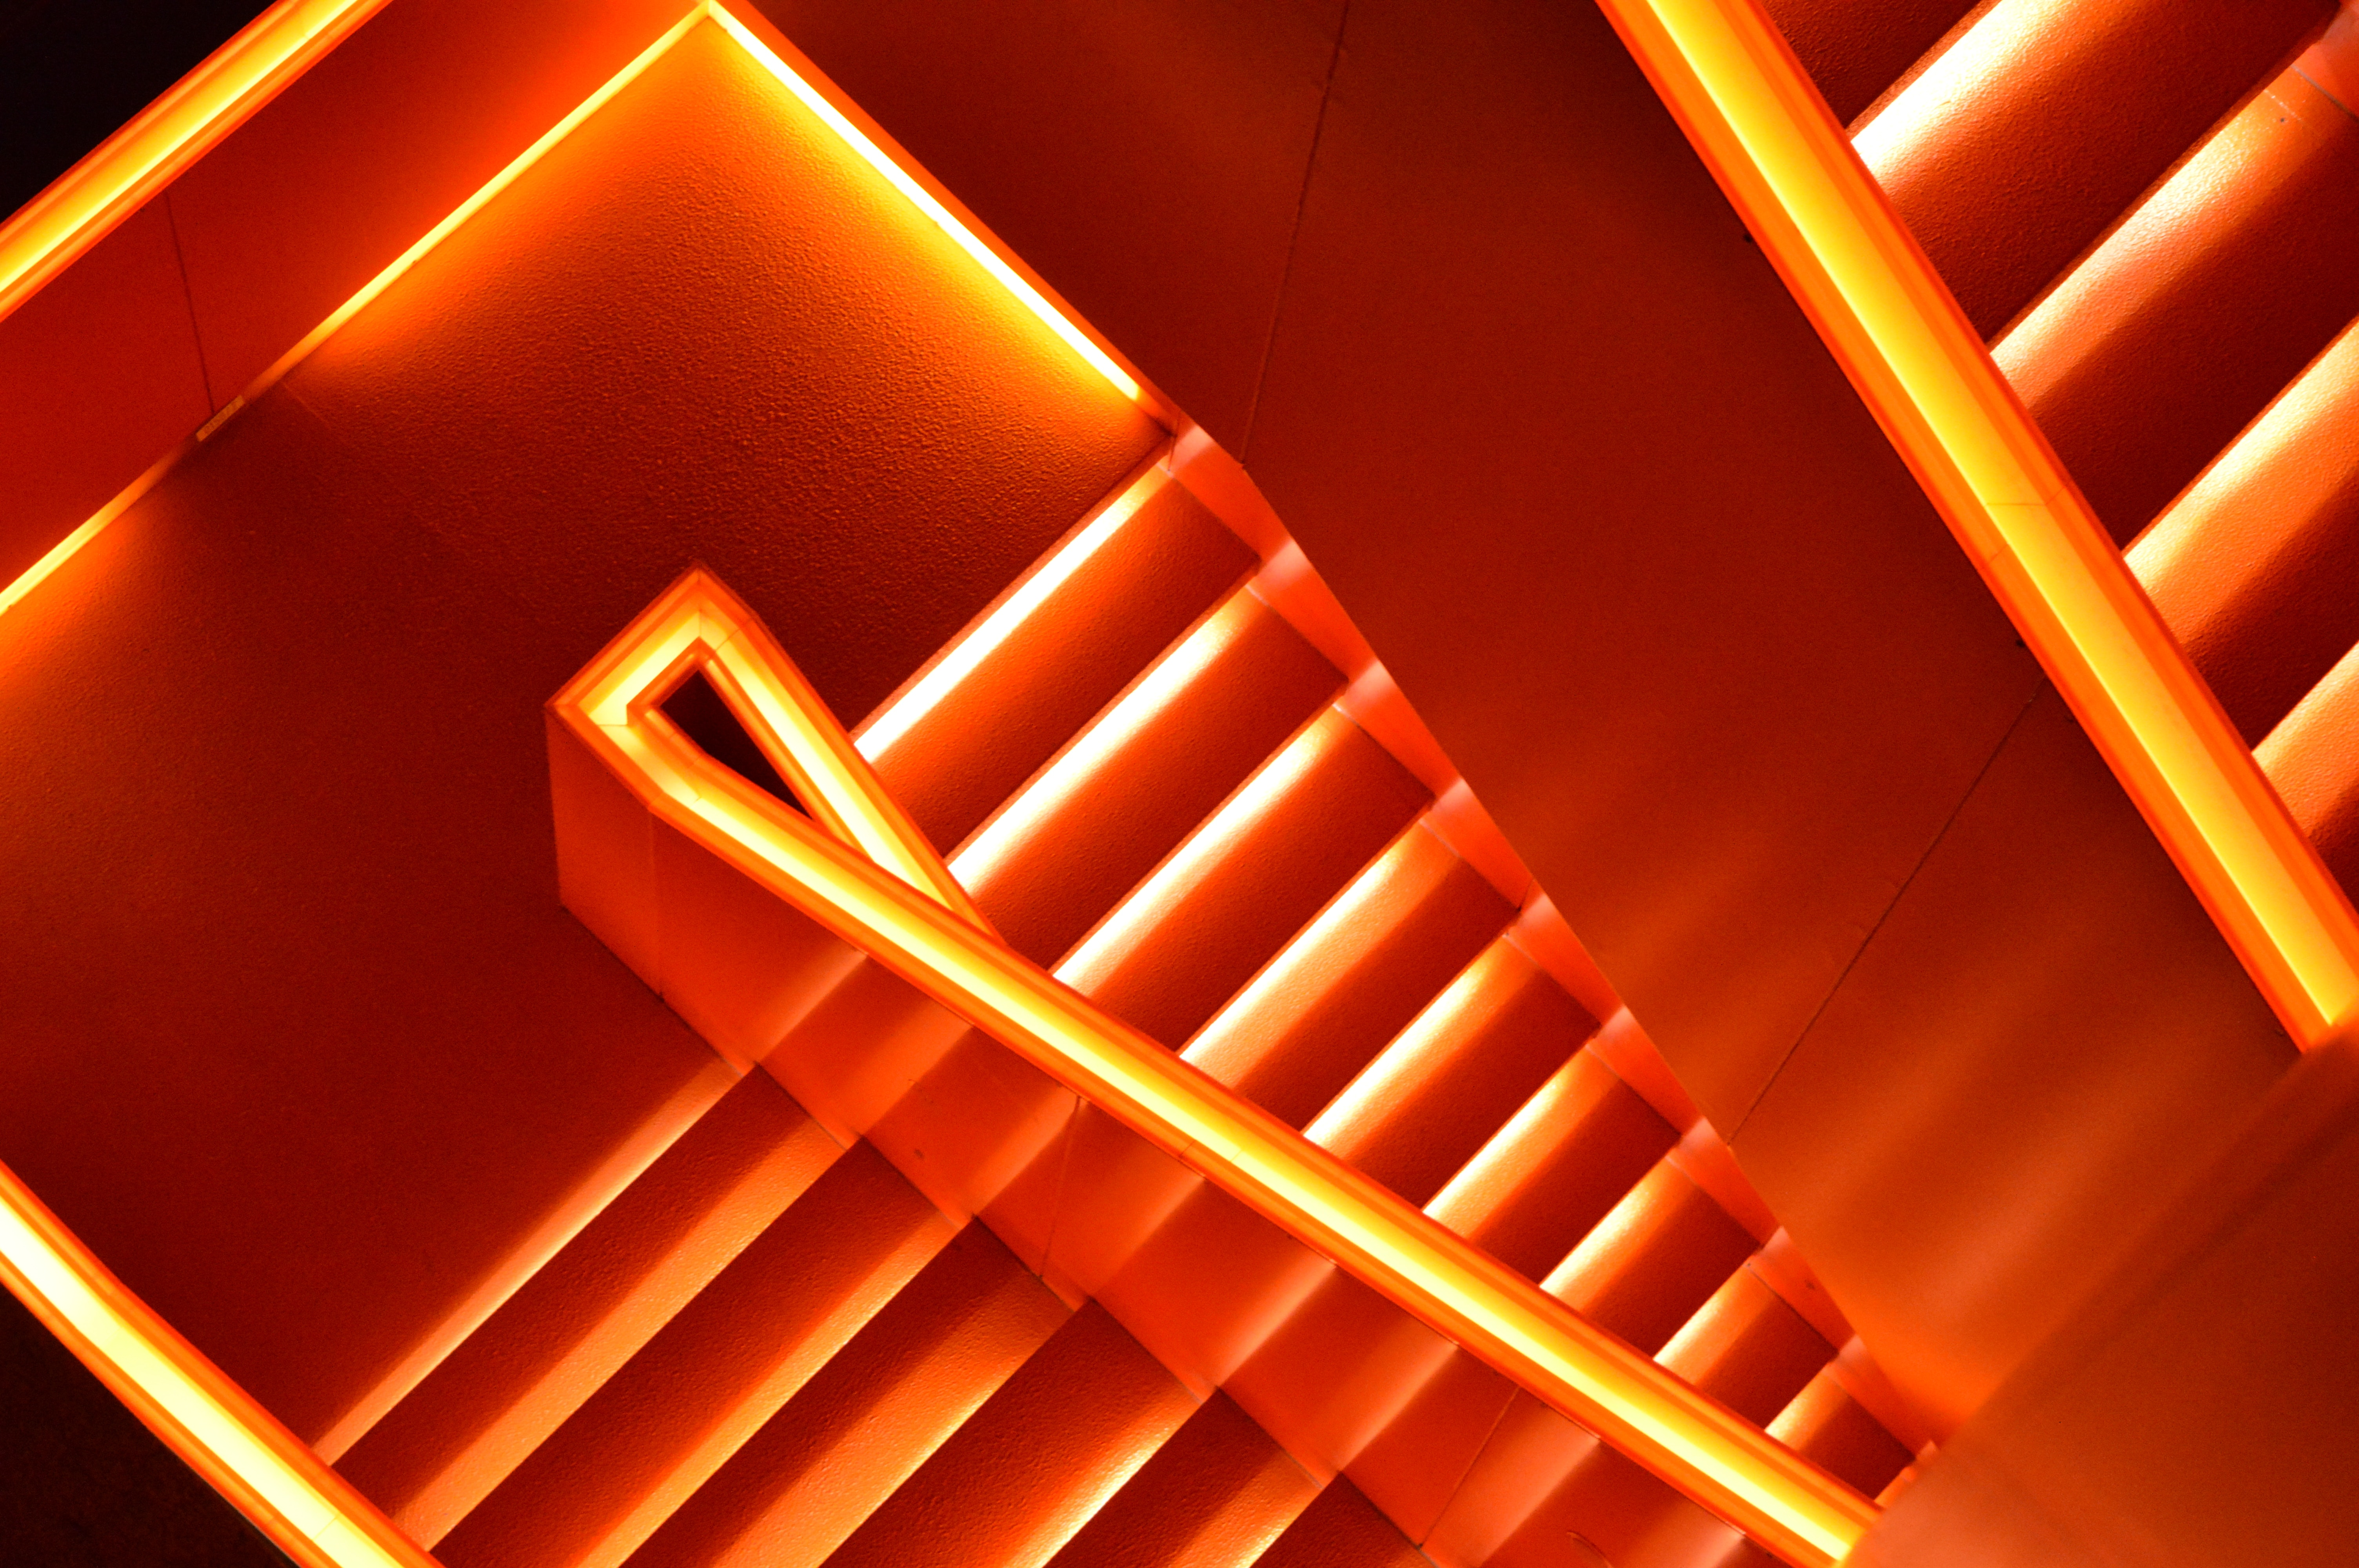 58209 download wallpaper Architecture, Miscellanea, Miscellaneous, Neon, Backlight, Illumination, Glow, Stairs, Ladder screensavers and pictures for free